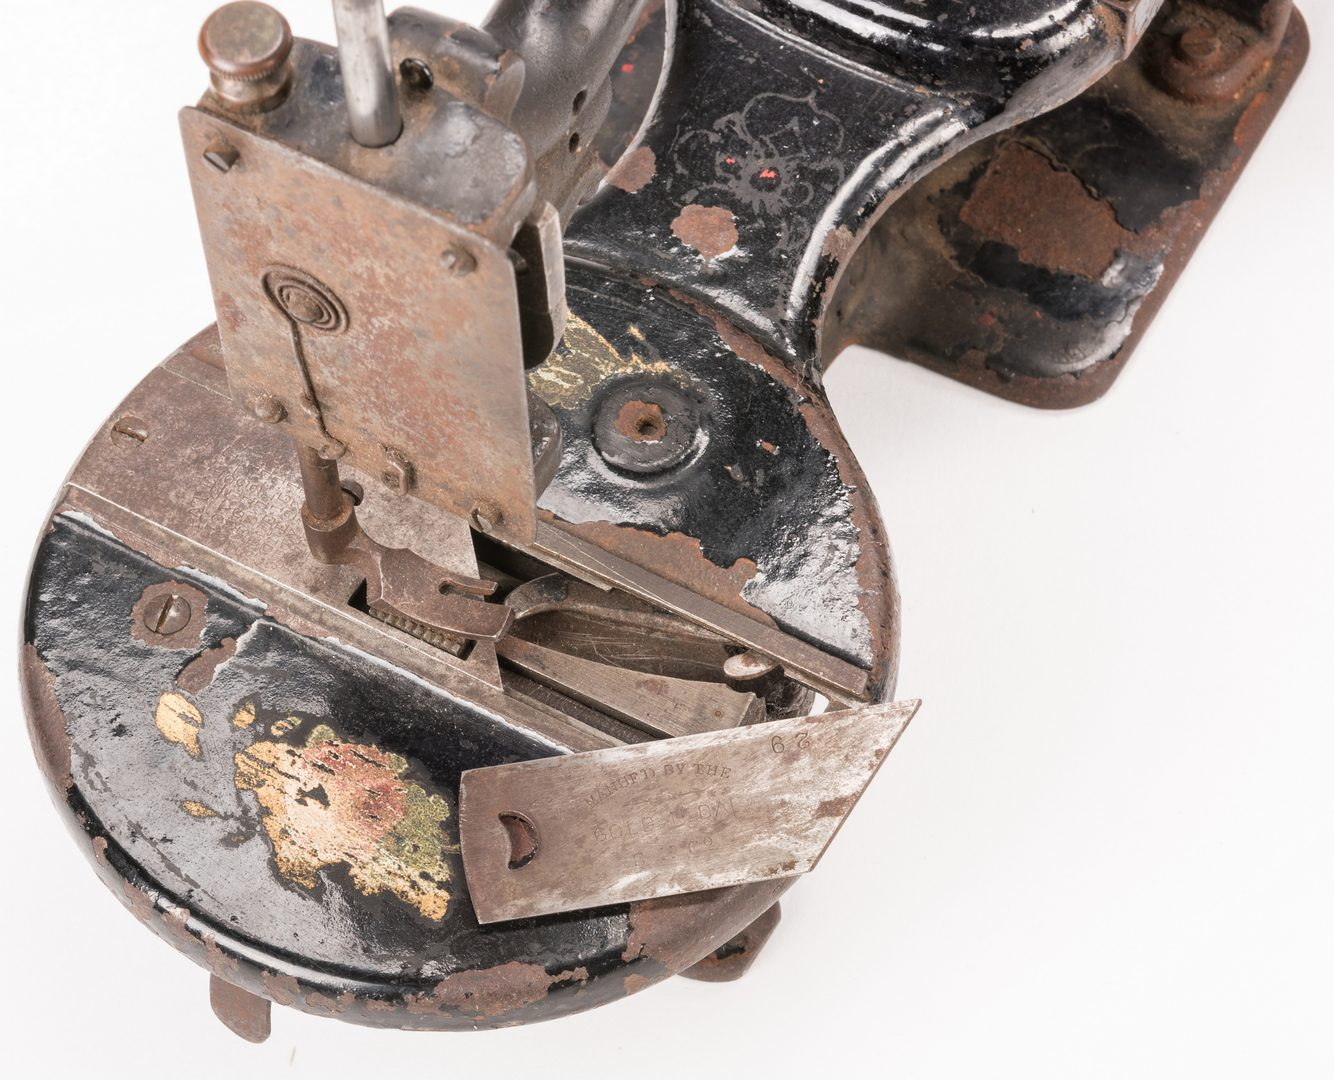 Lot 843: Four 19th c. Cast Iron Sewing Machines